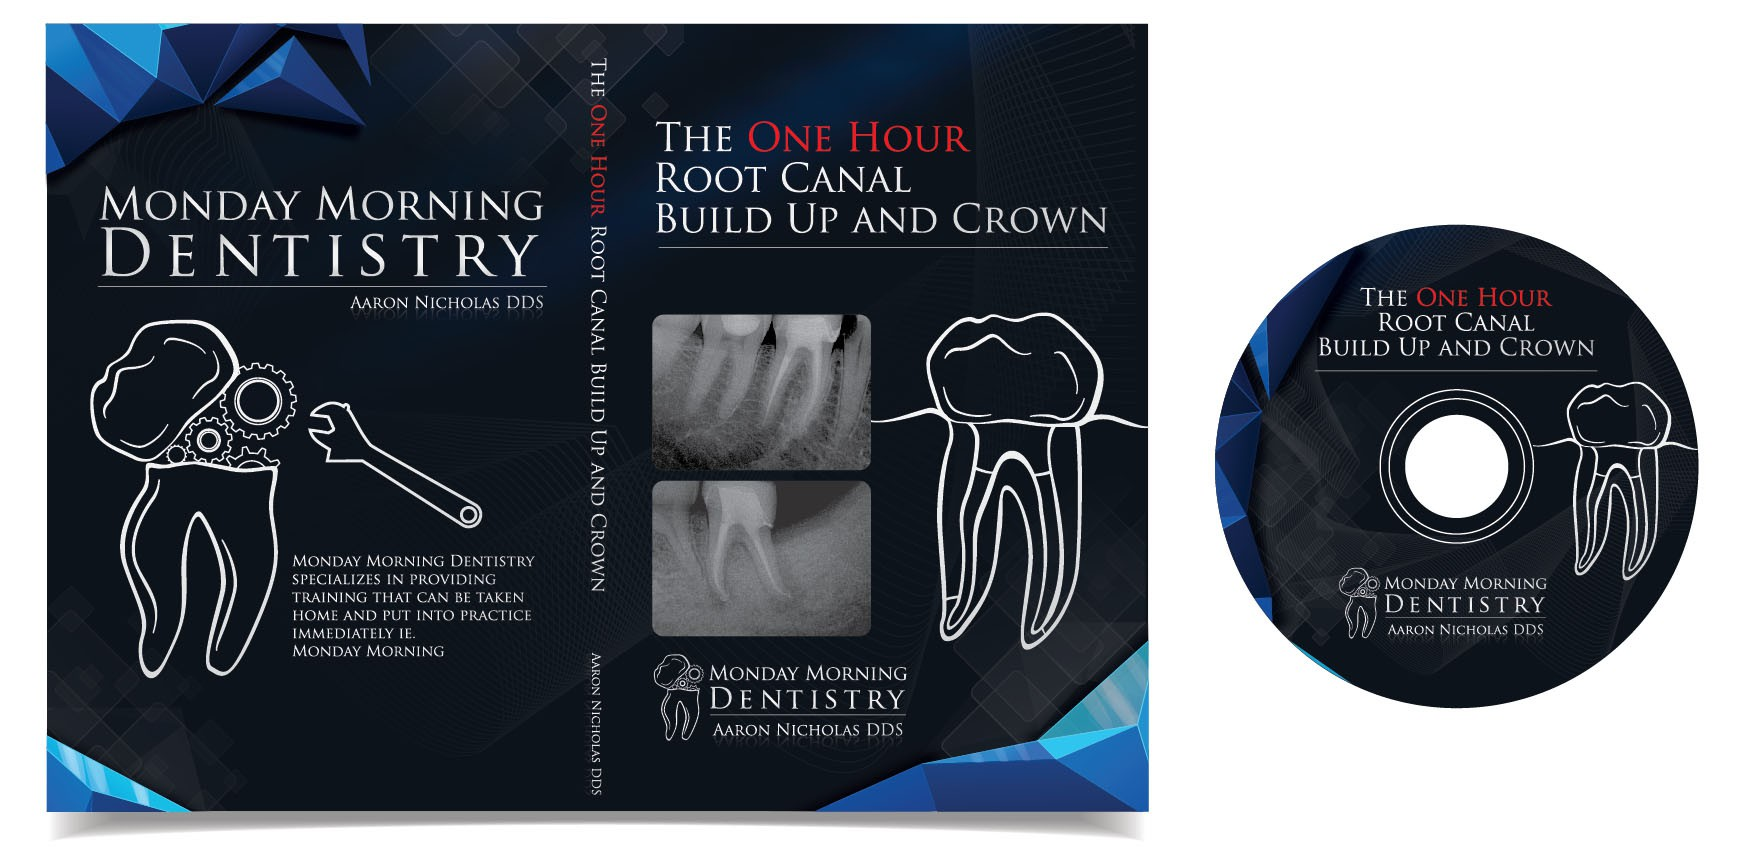 create a compelling graphic for a new dental procedure